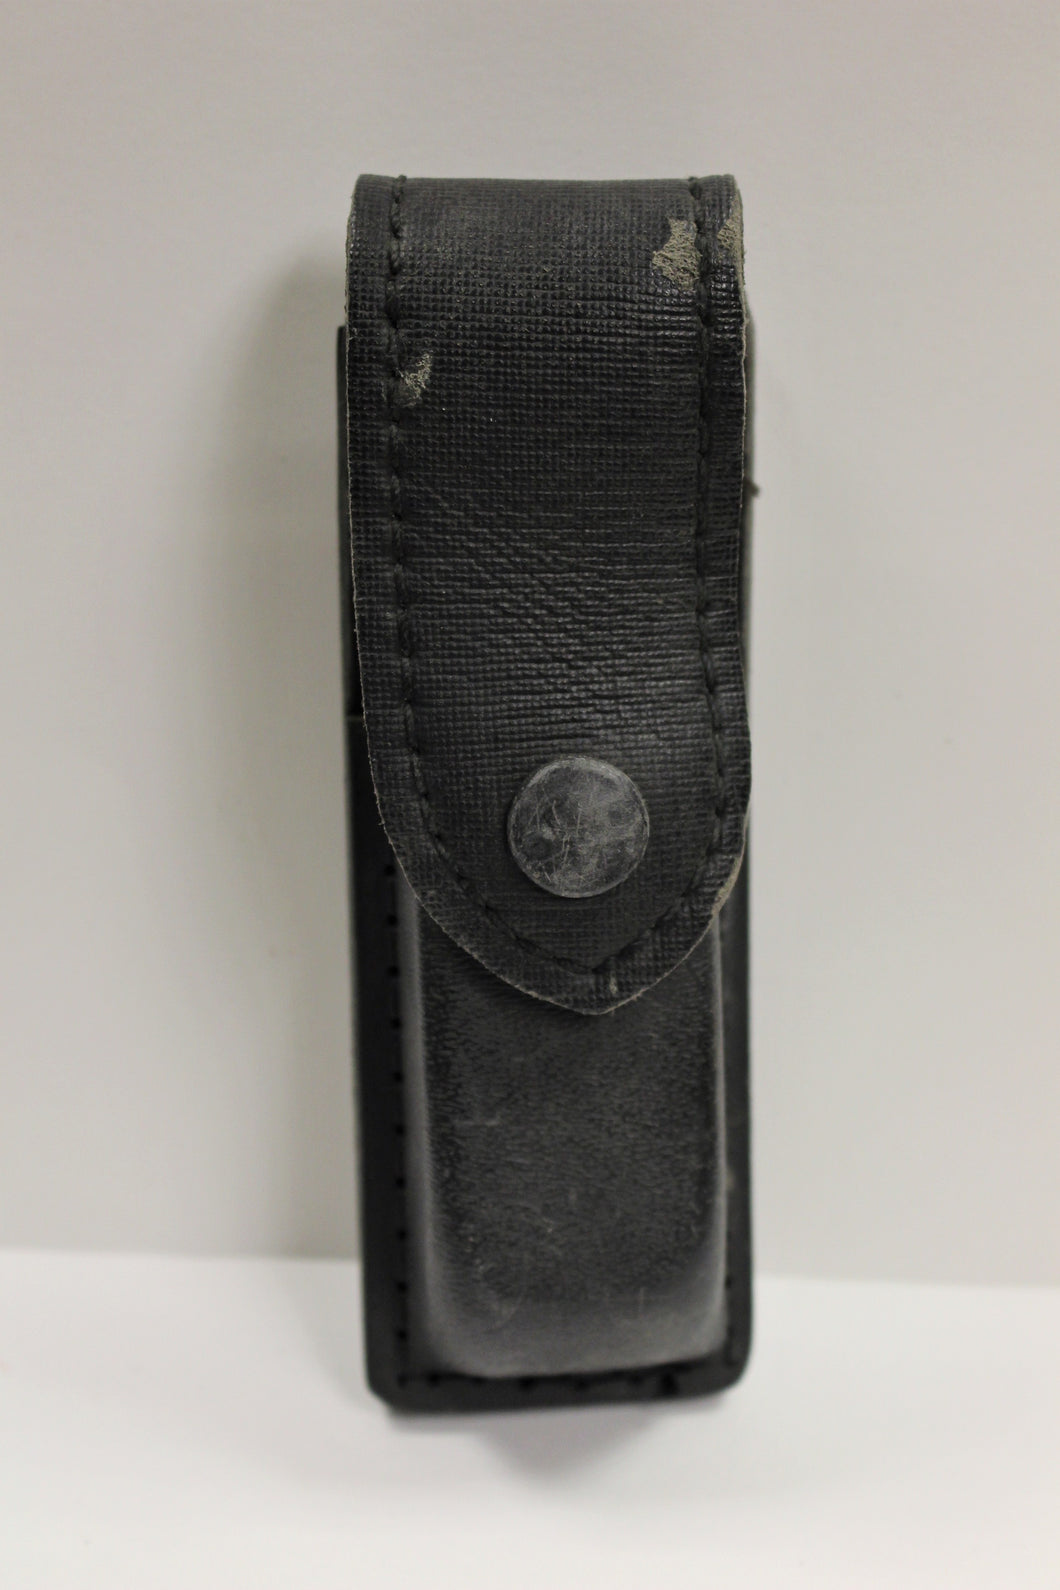 Safariland Single Magazine Pouch, Black, Fits Beretta 8000, 76-76-23PBL, Used